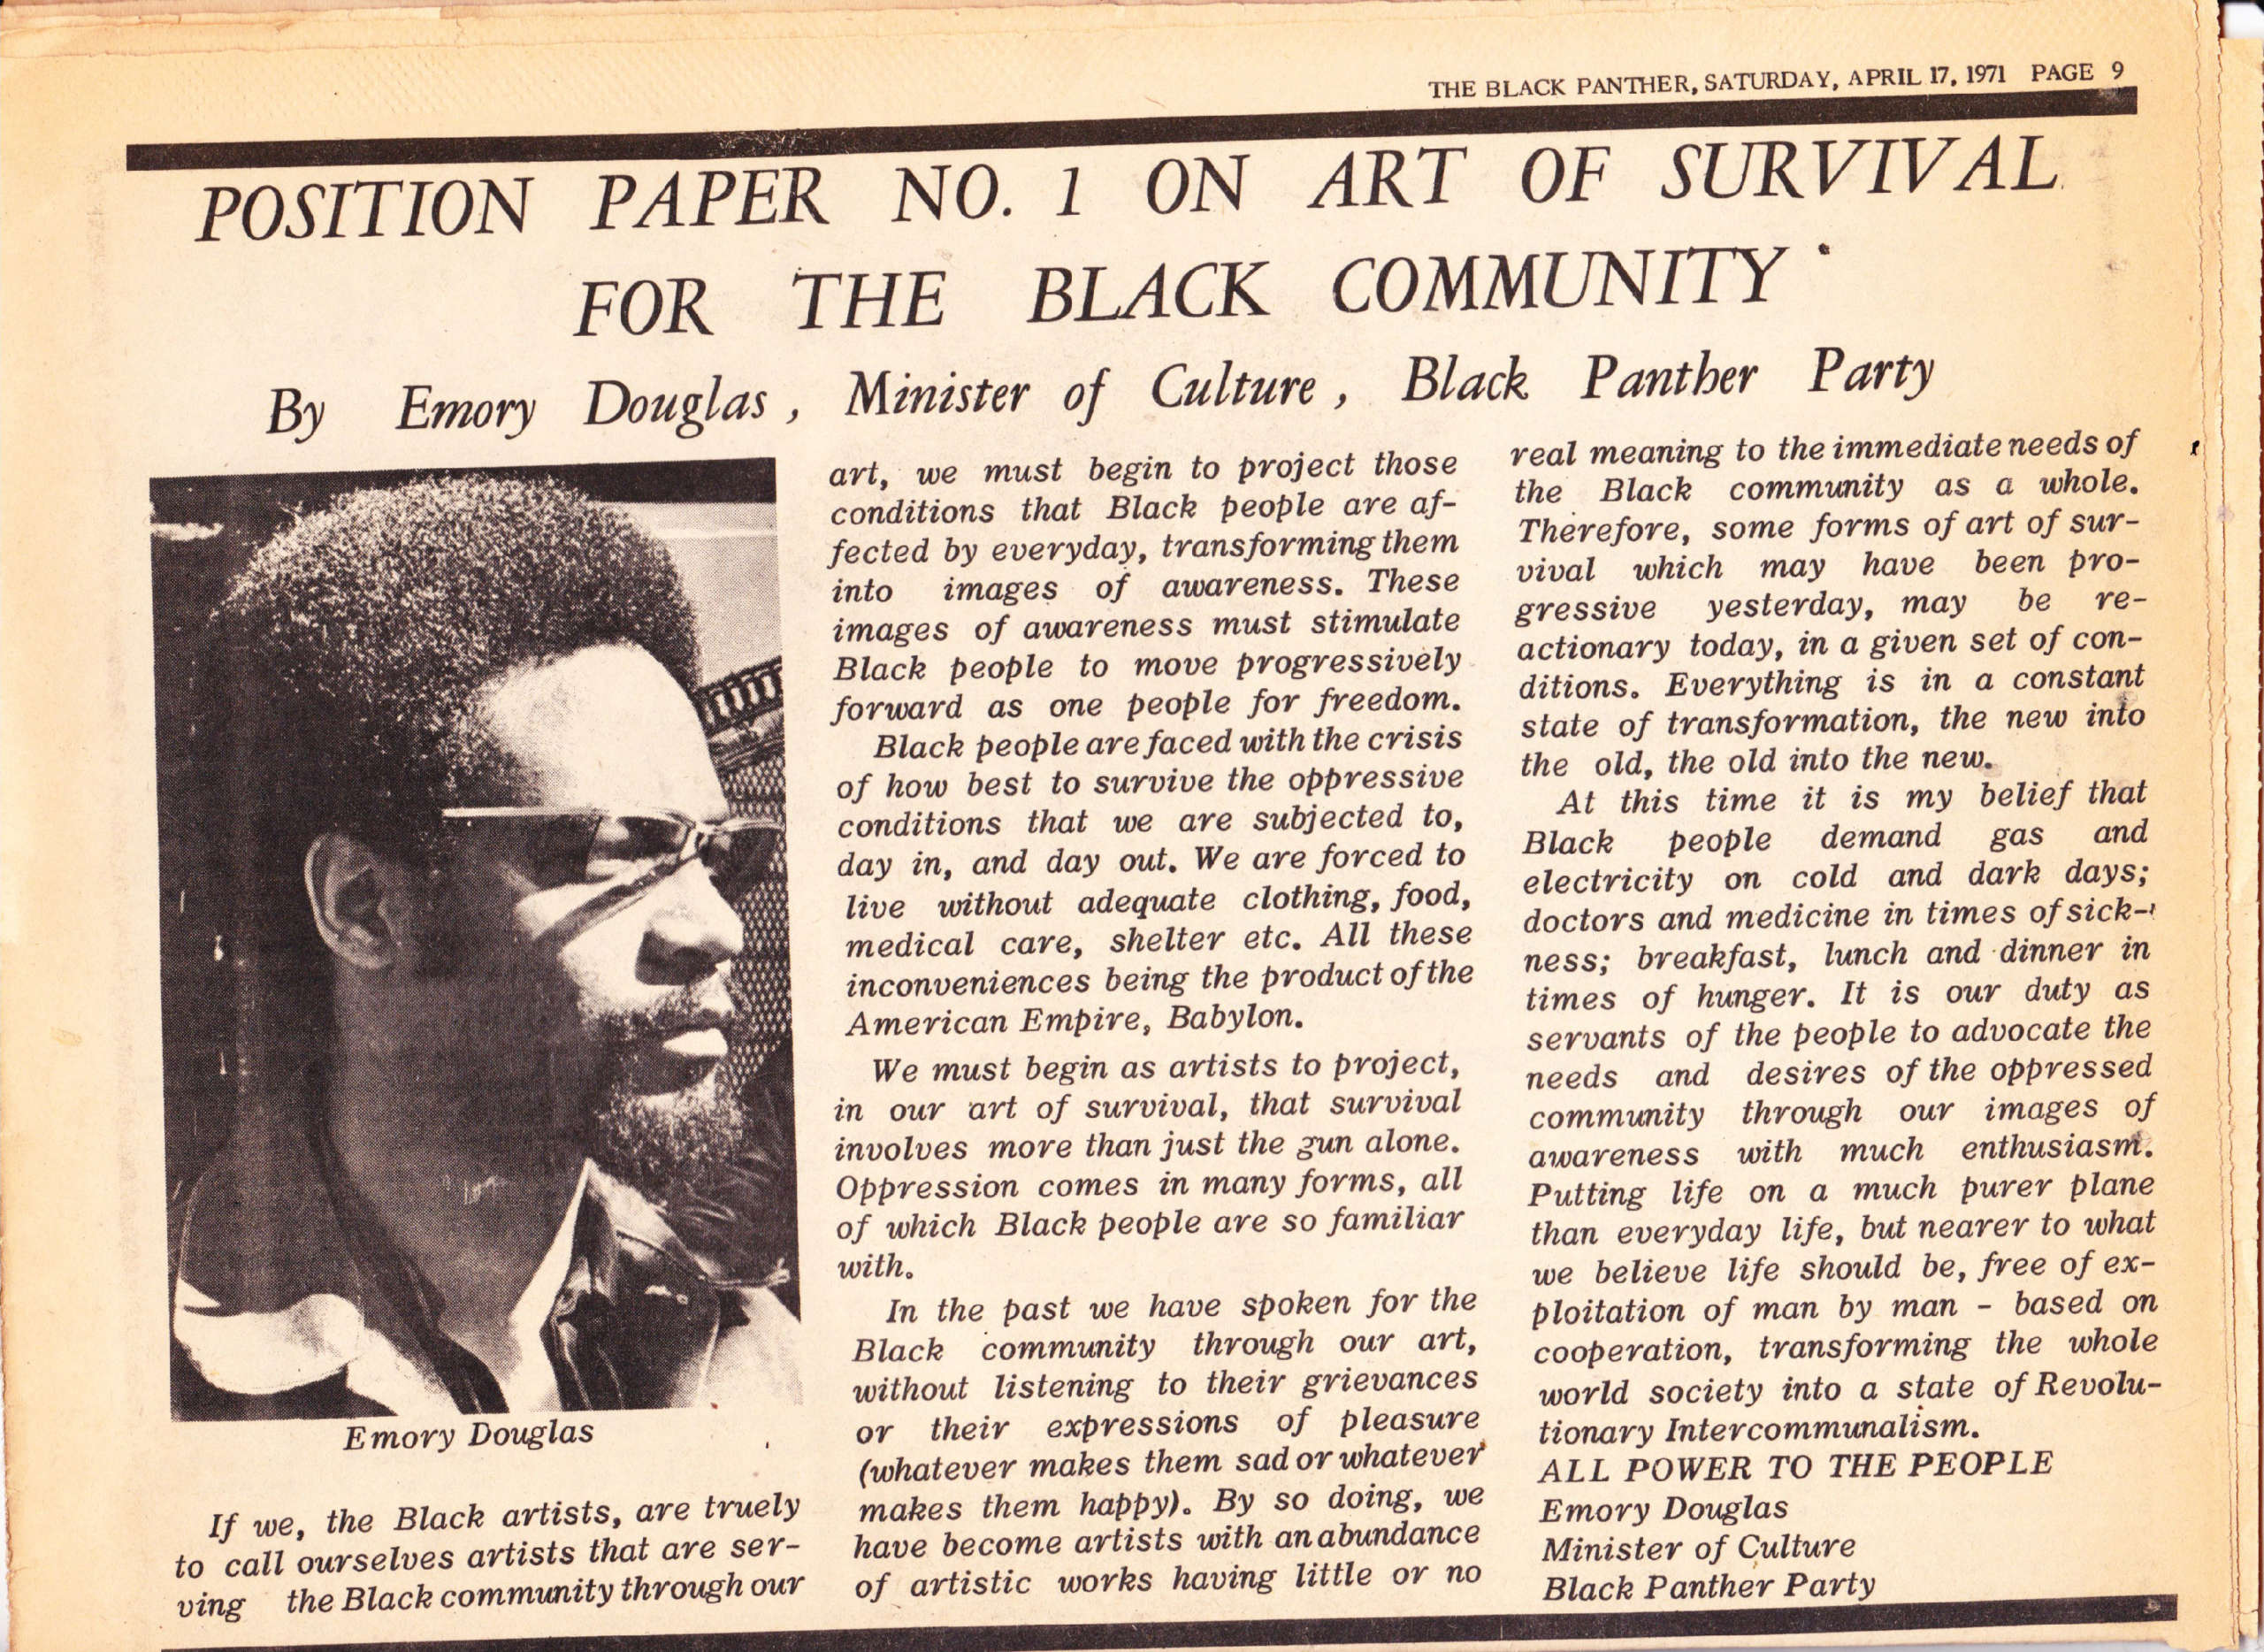 Emory Douglas writes in The Black Panther on Art of Survival, April 17, 1971.